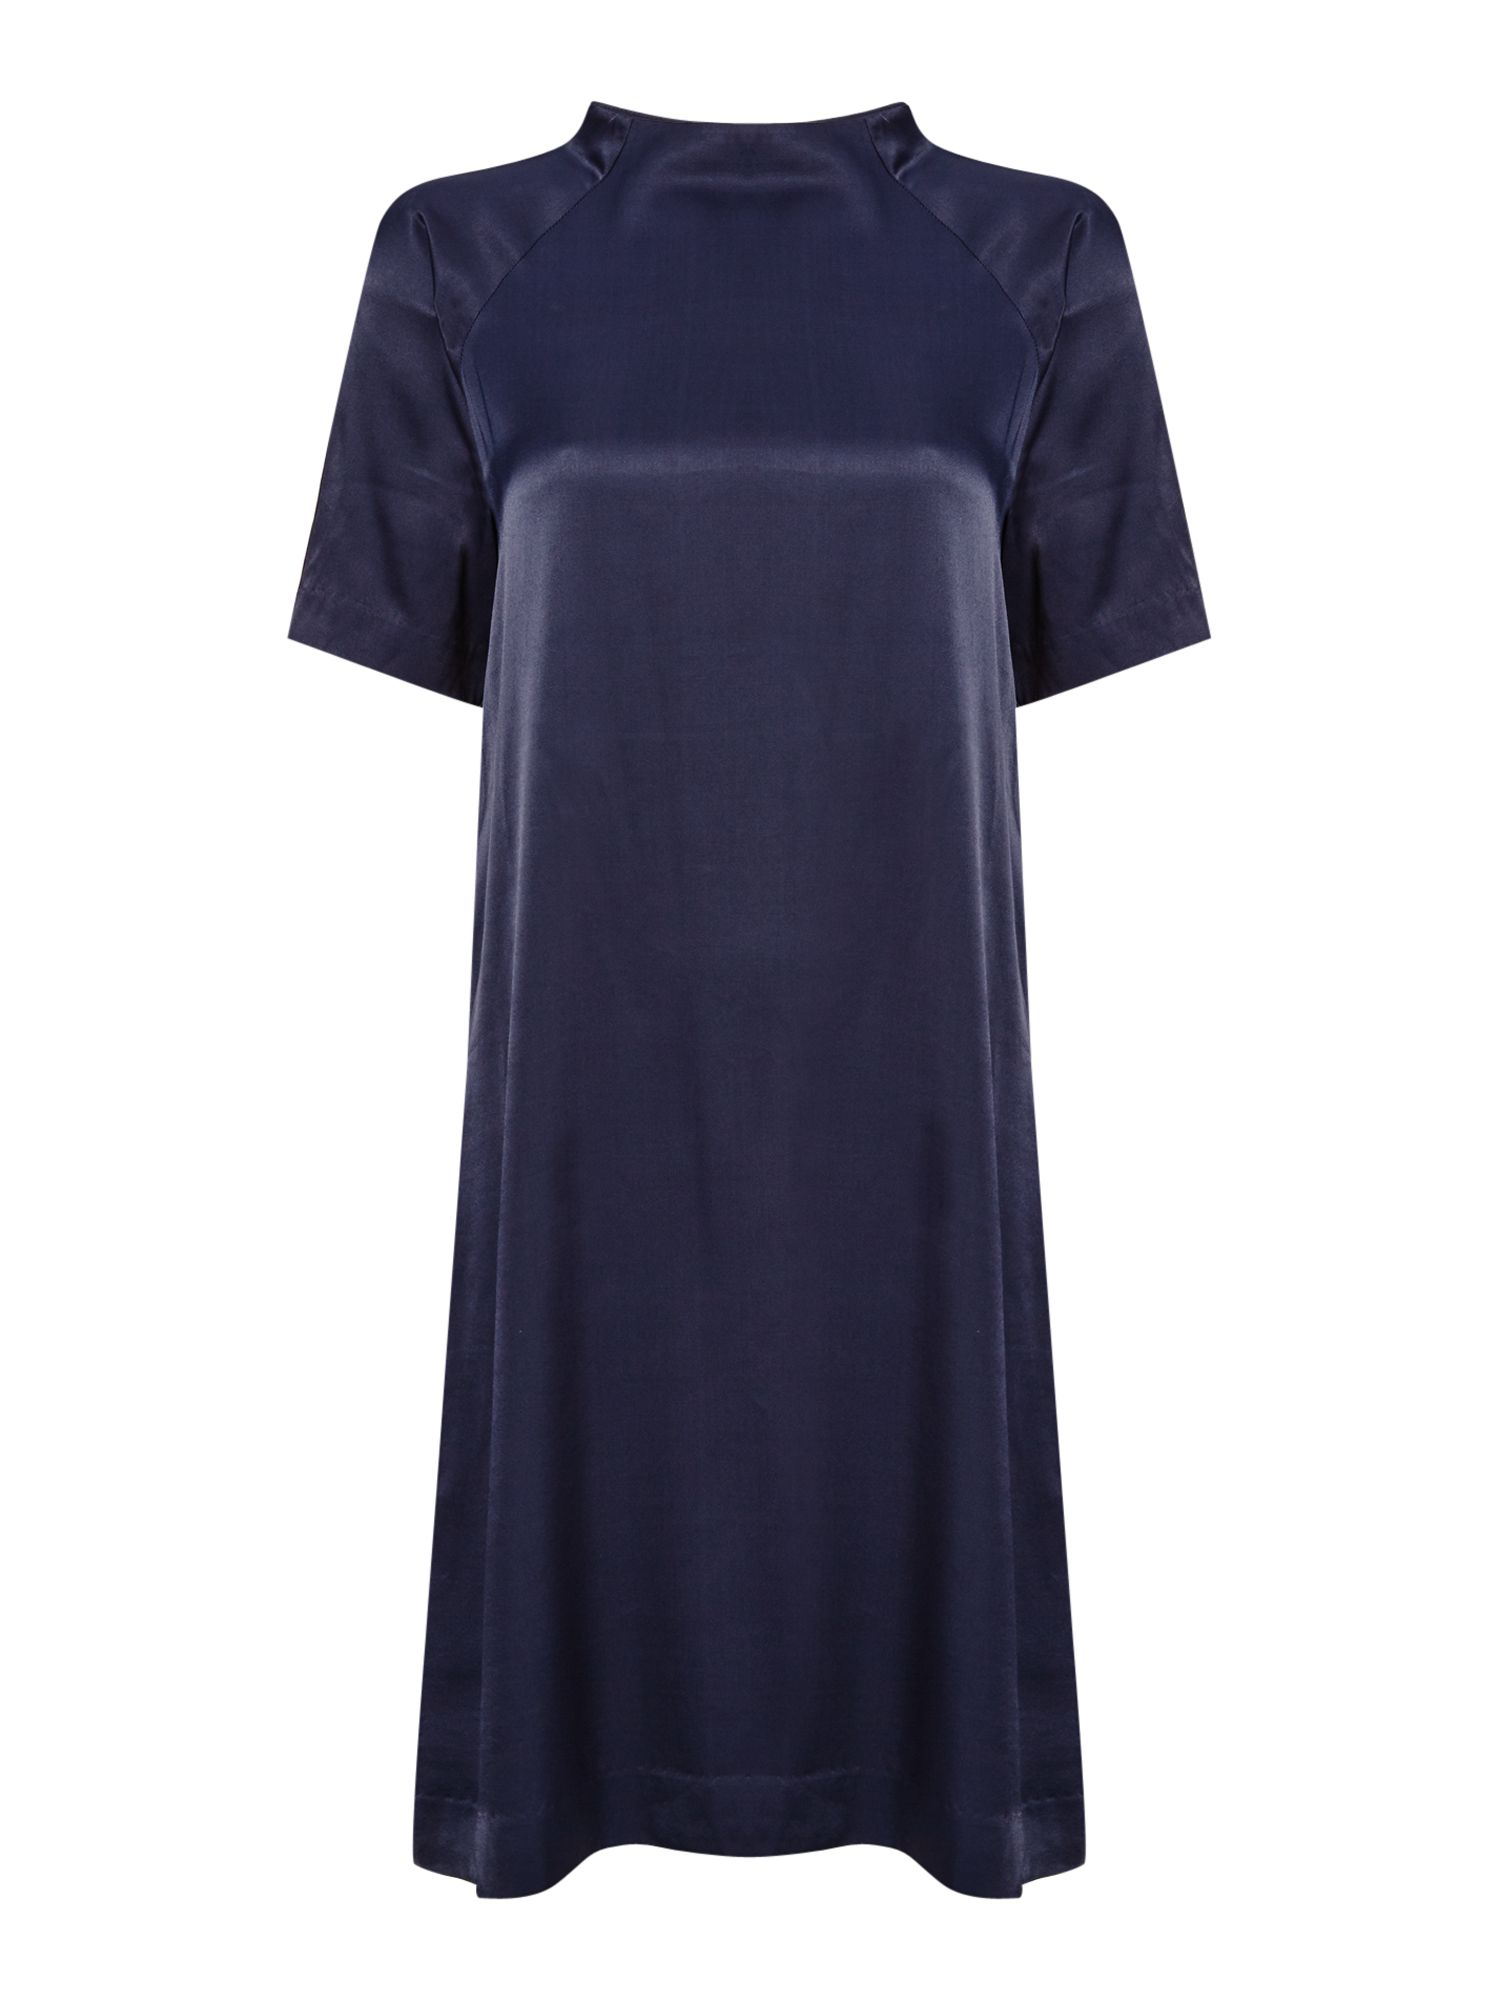 Samsoe and Samsoe Short sleeve crew neck shift dress, Sapphire Blue